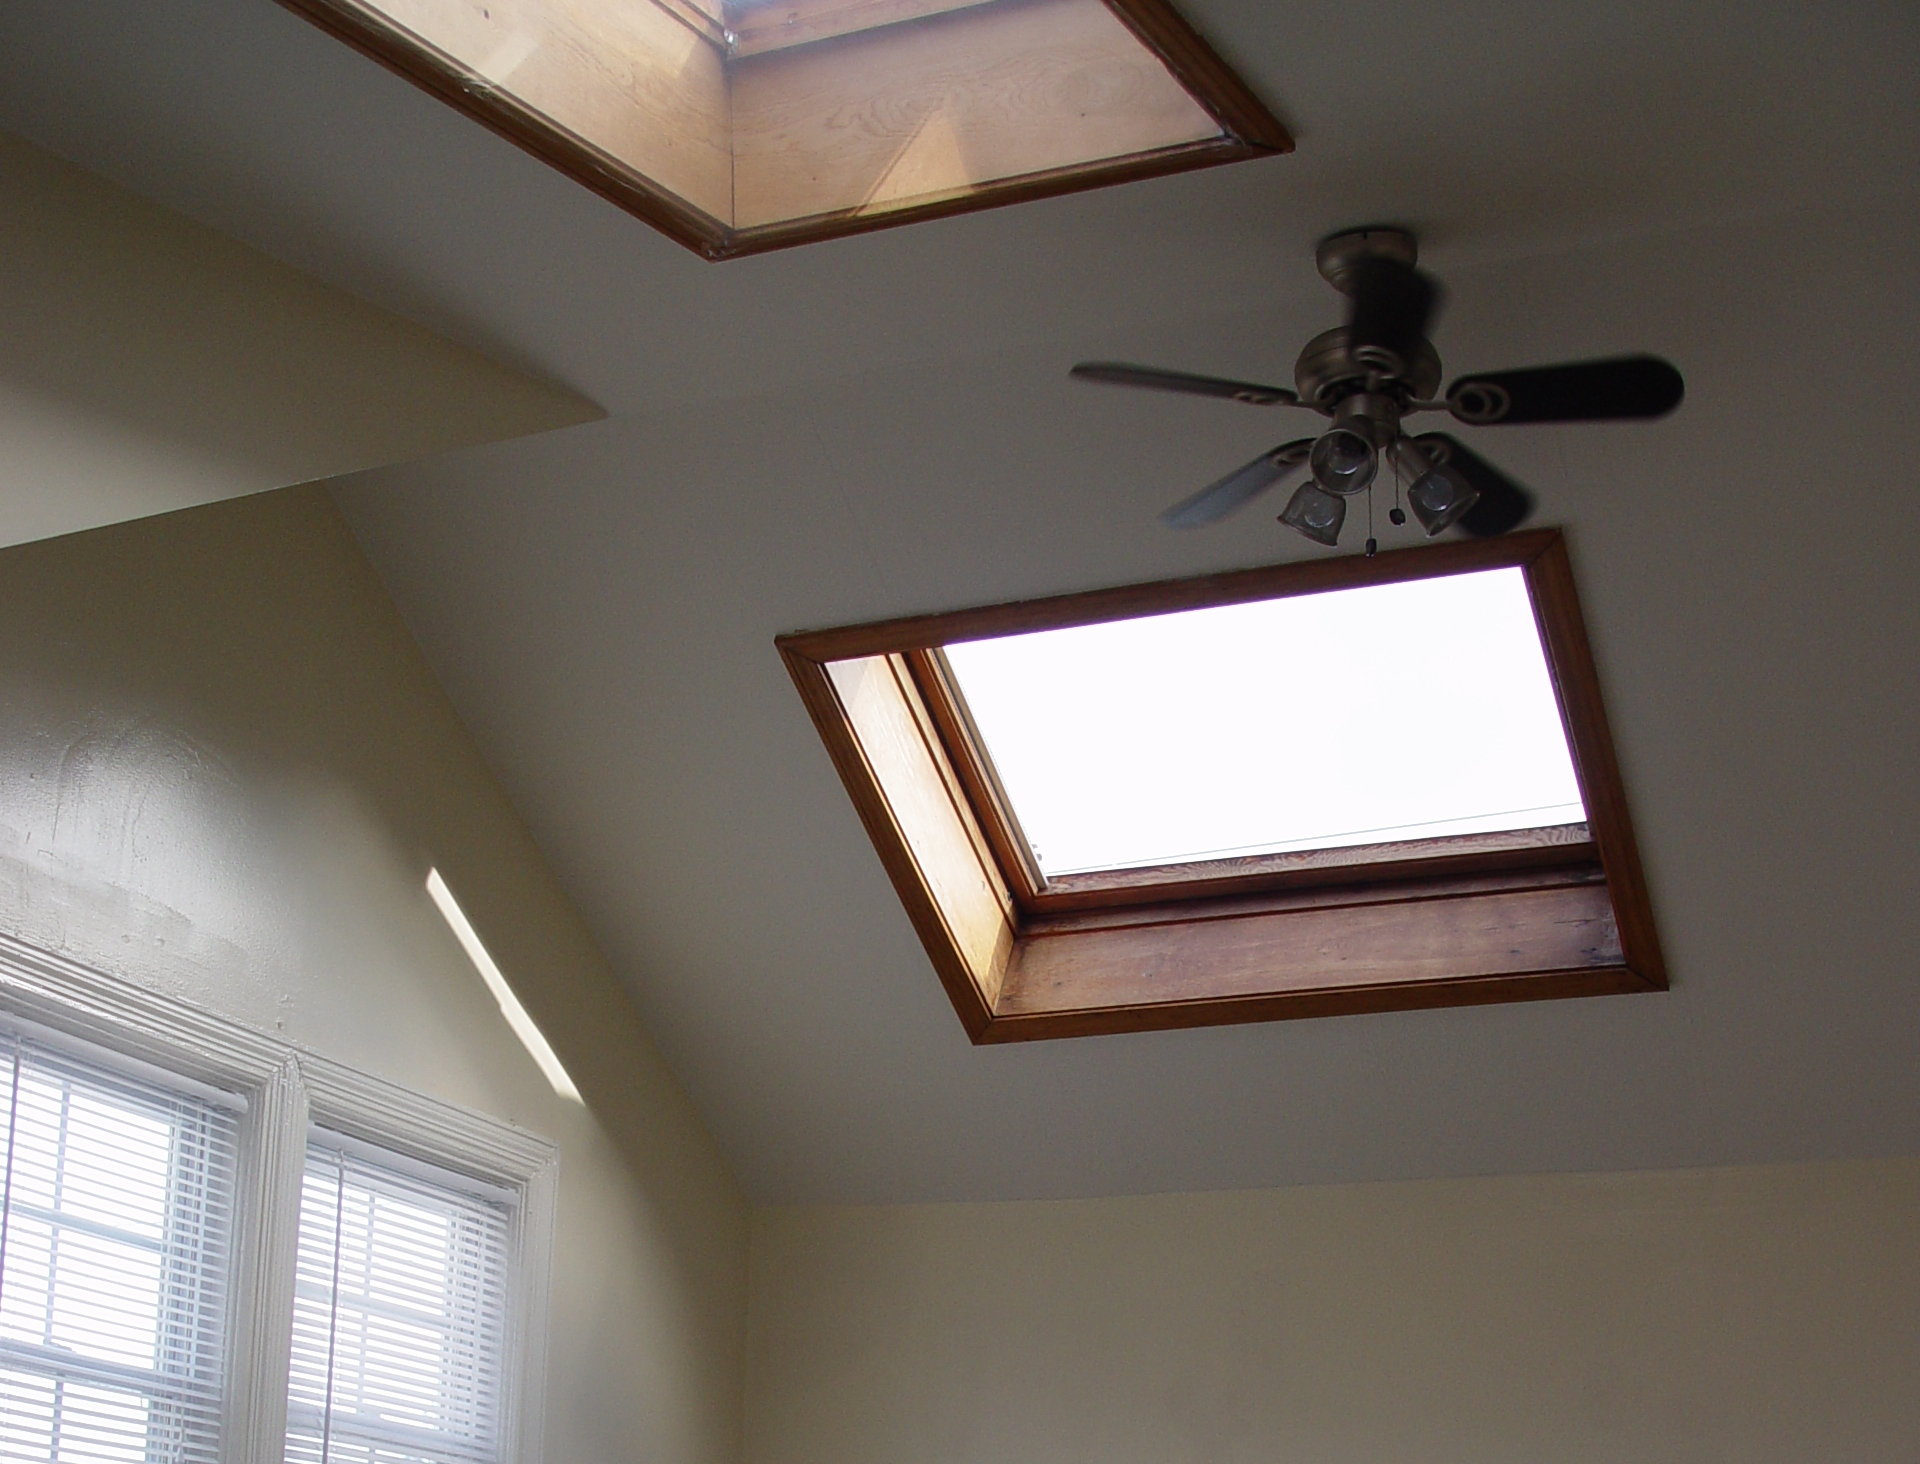 ceilings with ceiling ppr are on google and the upper facebook over wm reviews repair singapore landed plumber highly pipe concealed happy leak recommended years thomson customers many we